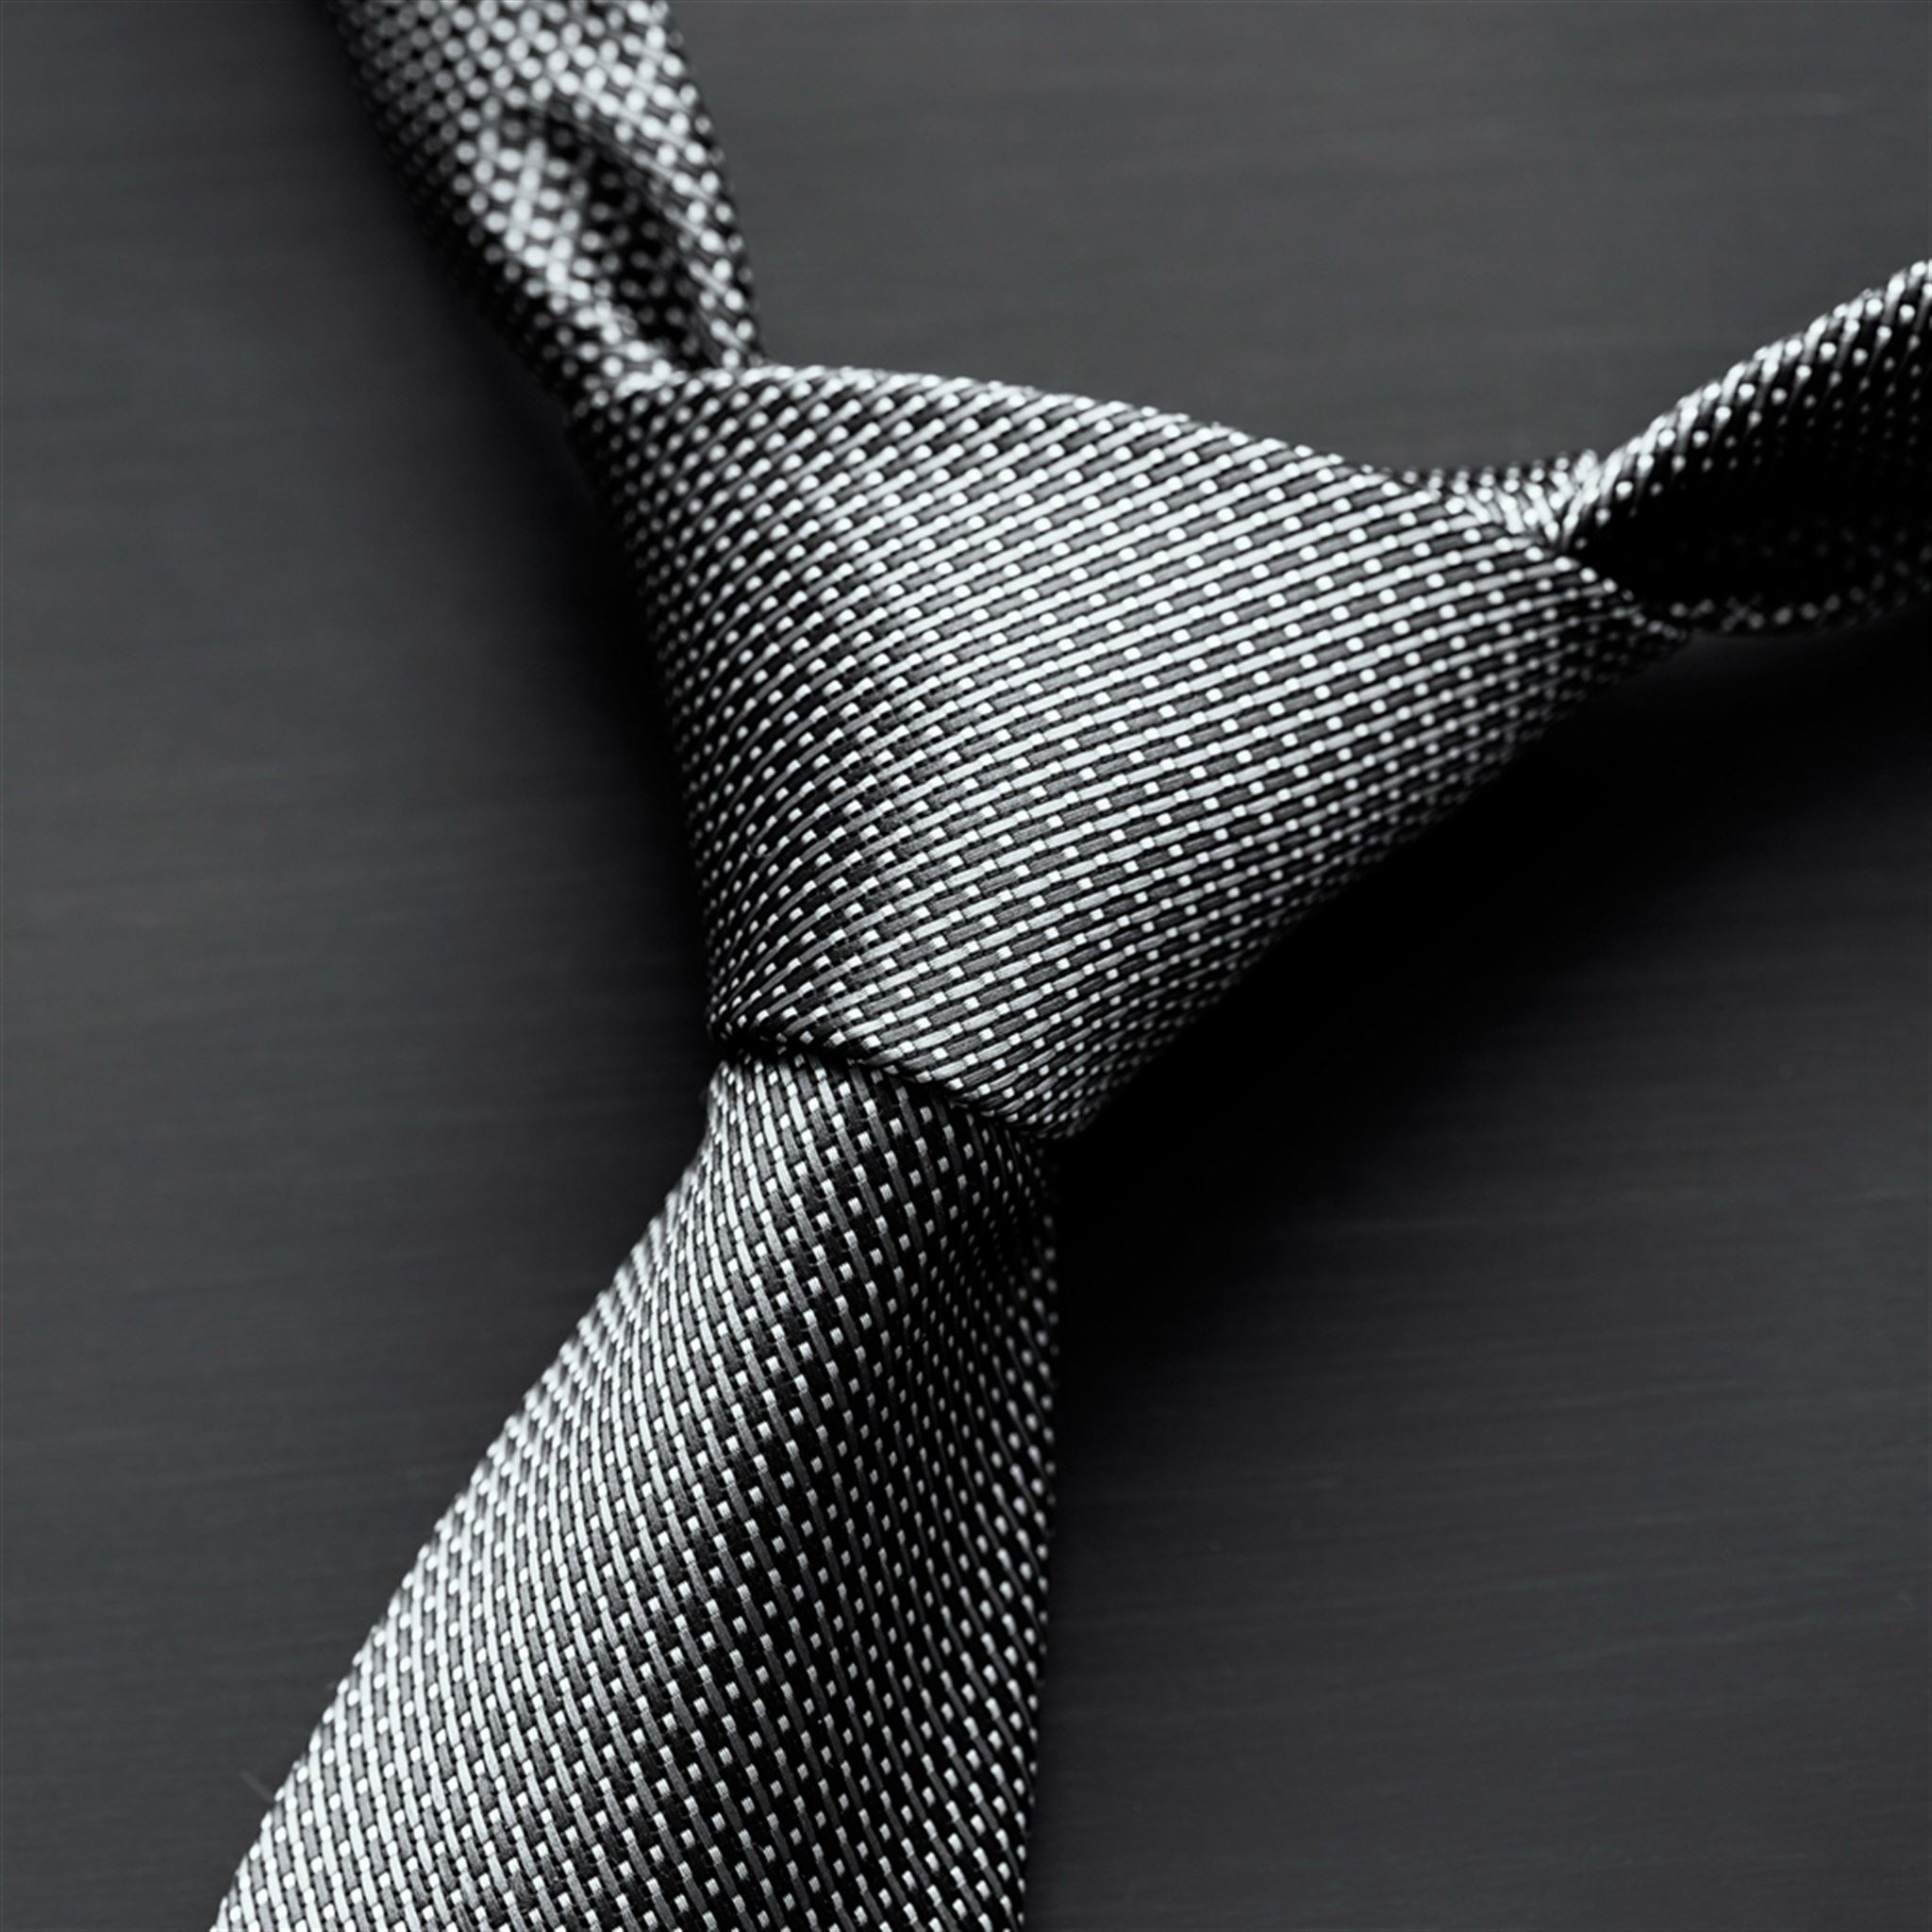 Abstract Gray Tie Background IPad Wallpaper Download